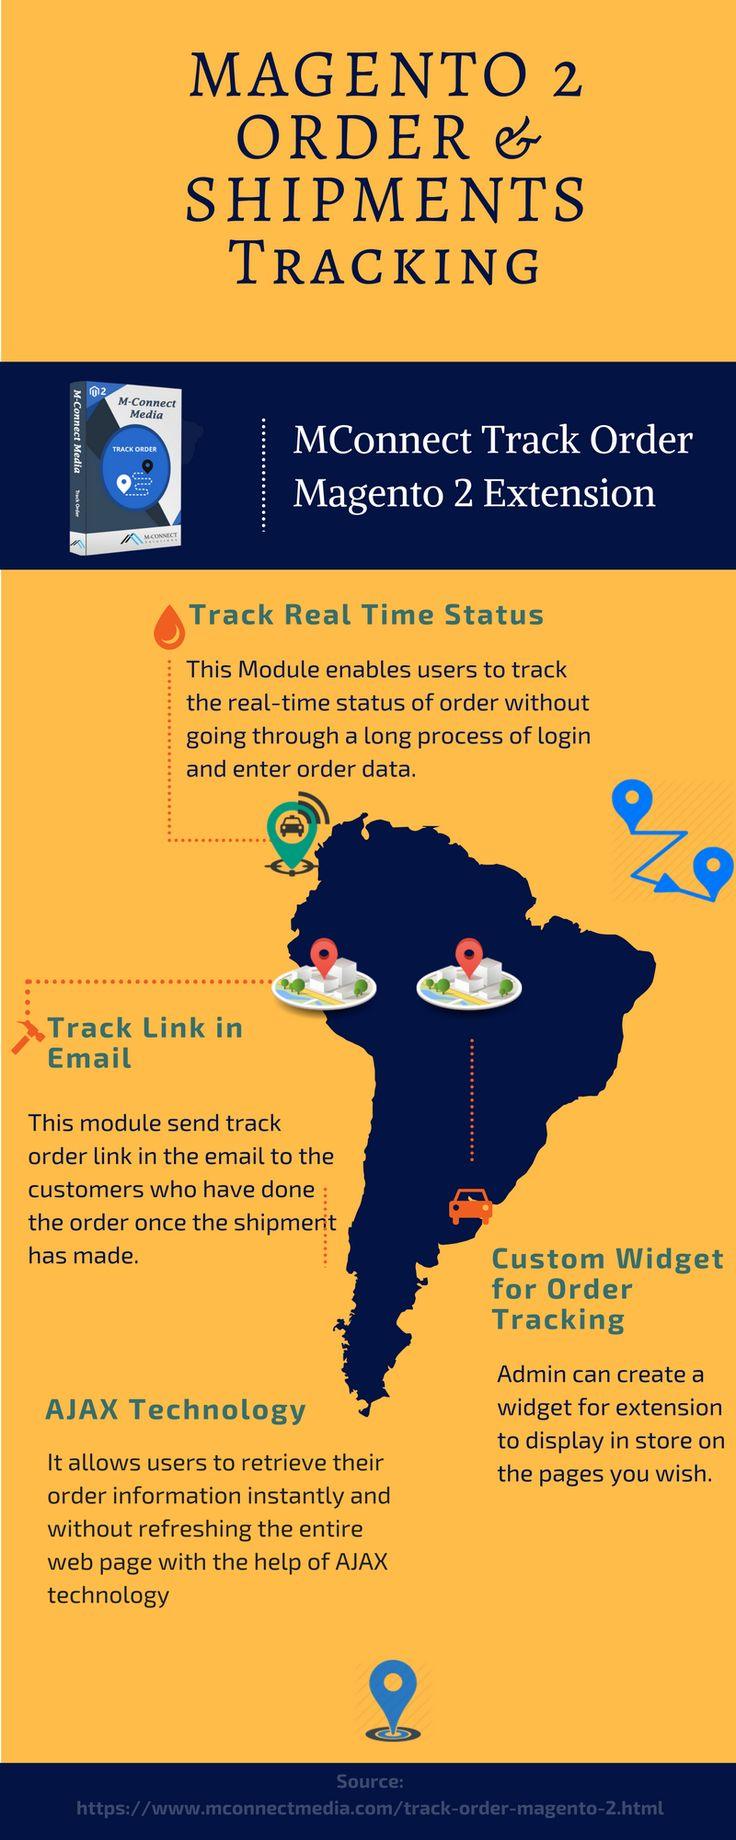 Track your Purchased Order Status and Shipment without Login  - Track Order Magento 2 Module by M-Connect Media  #trackorder #ecommerceshippment #mconnect